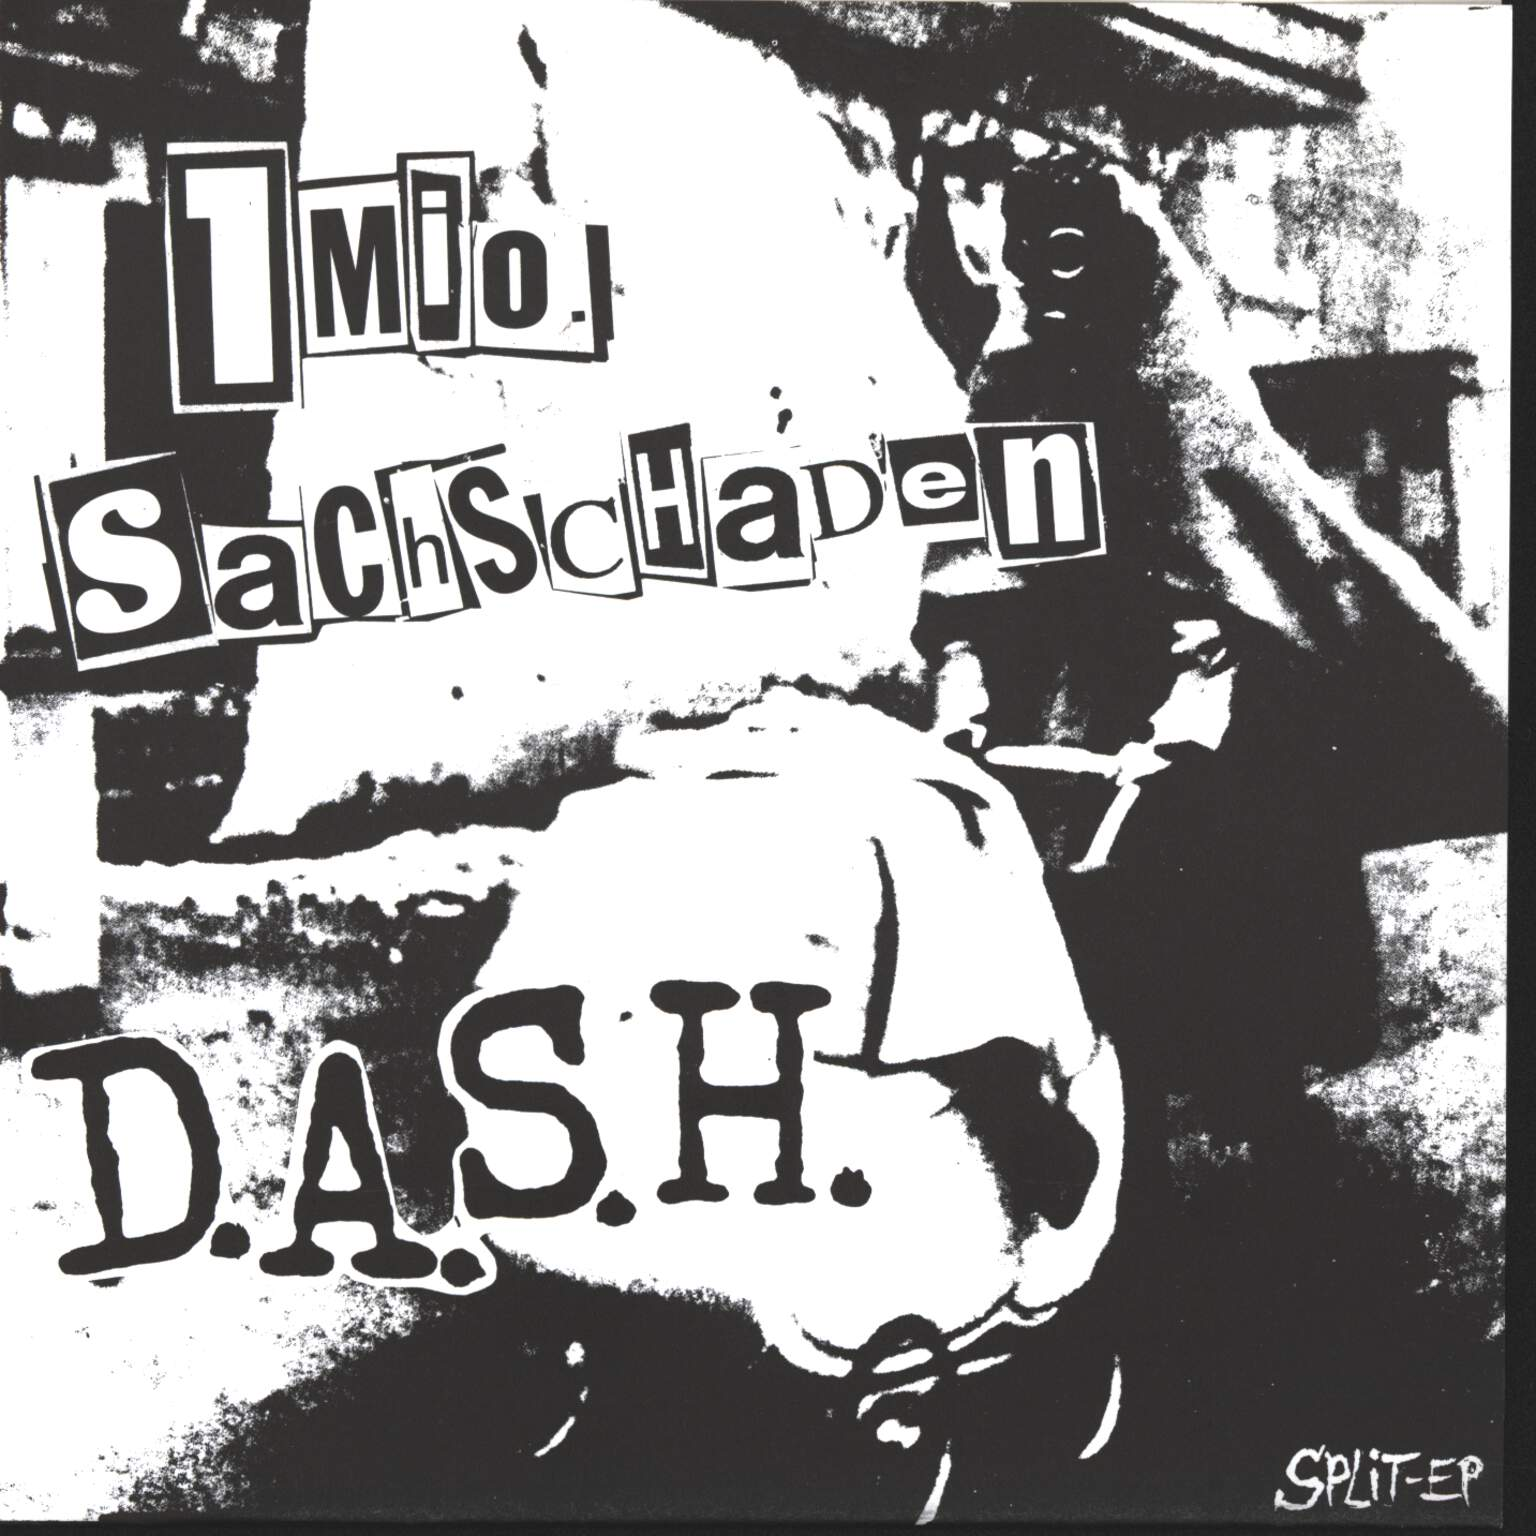 "1 Mio. Sachschaden: Split-EP, 7"" Single (Vinyl)"